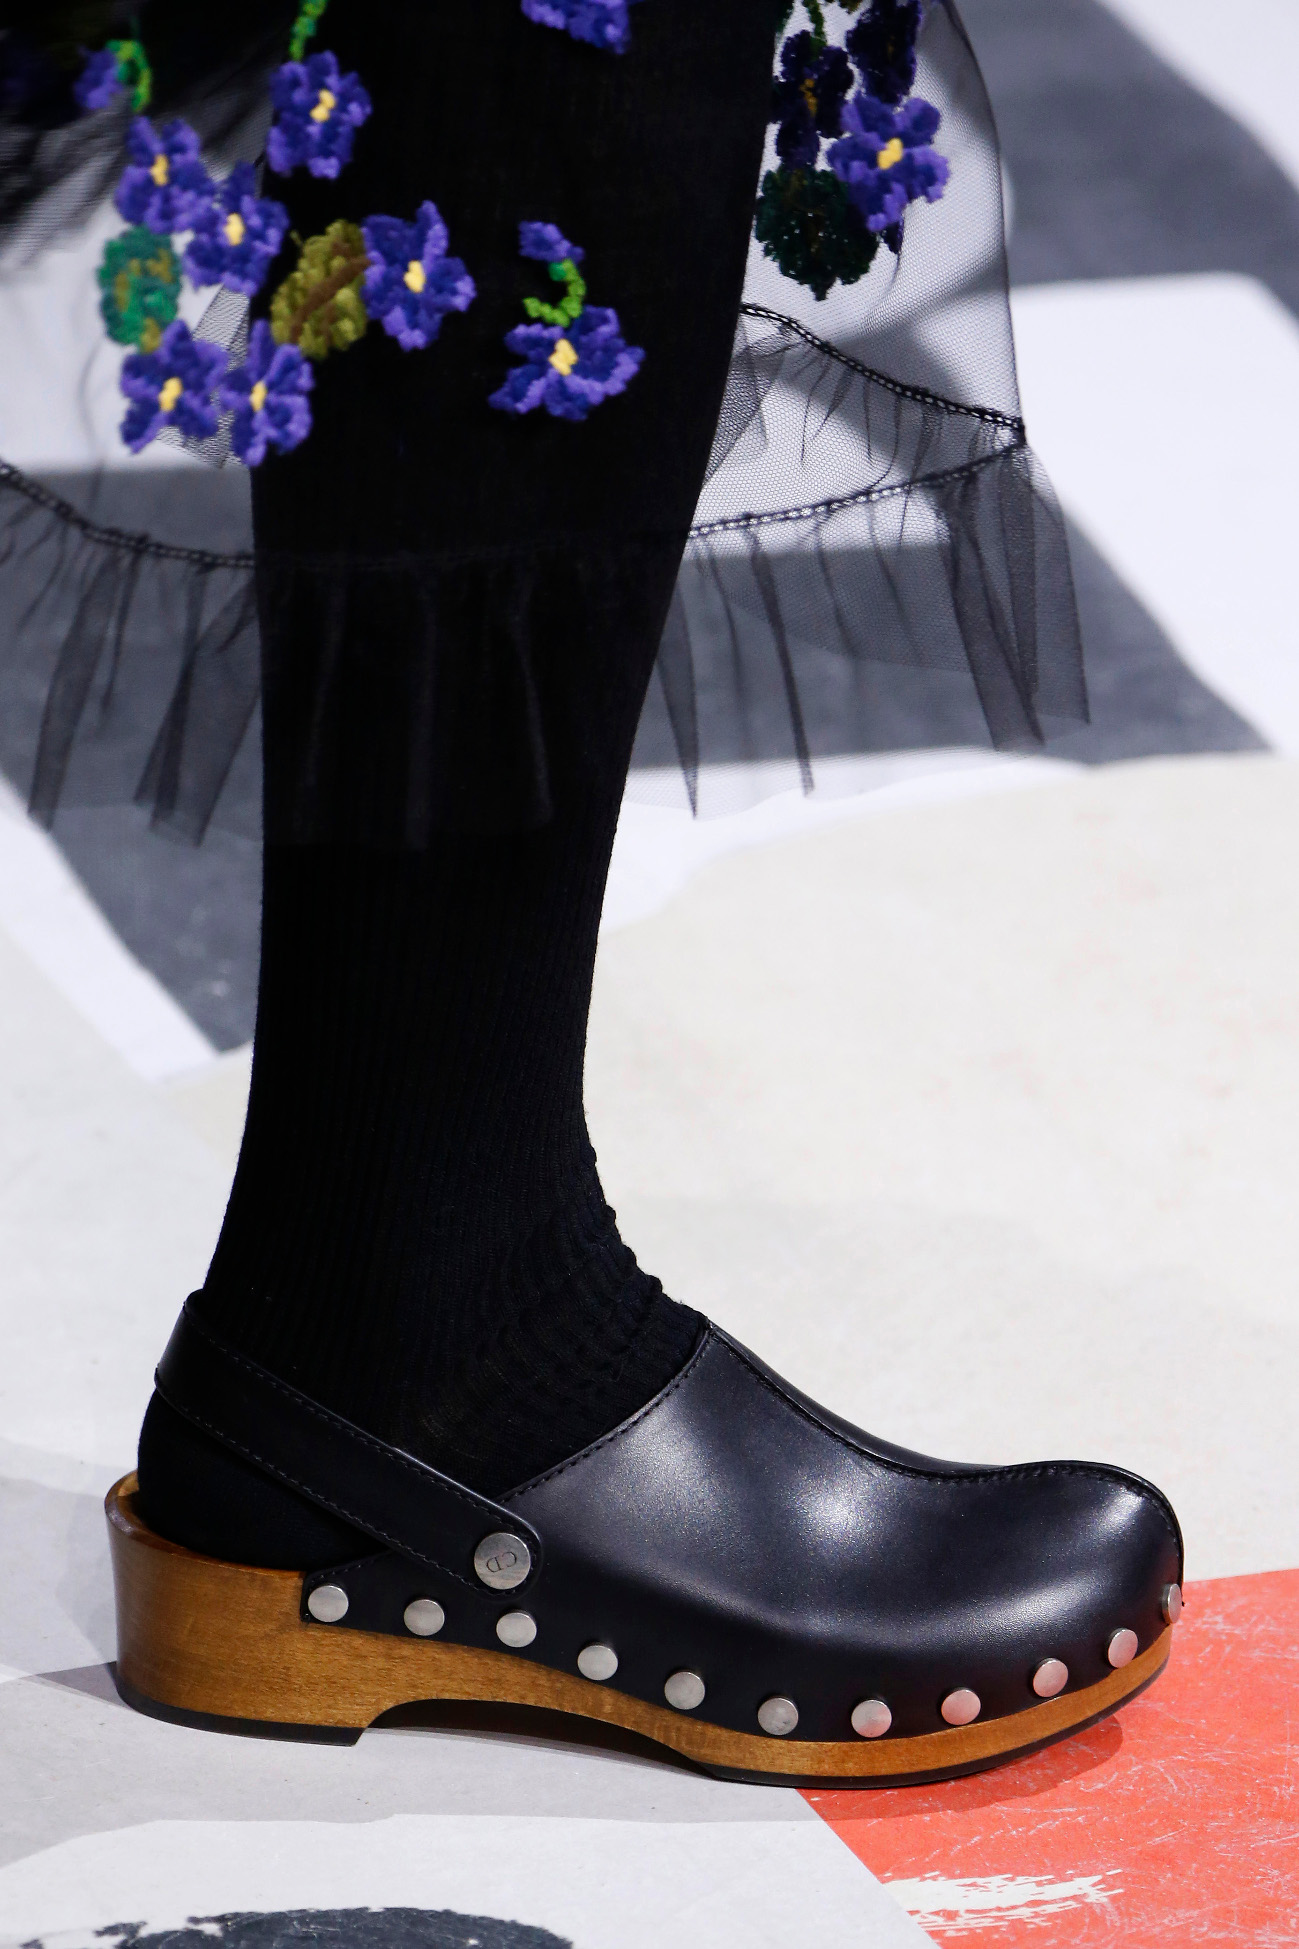 Shoe detail during the Christian Dior show as part of the Paris Fashion Week Womenswear Fall/Winter 2018/2019 on February 27, 2018 in Paris, France.